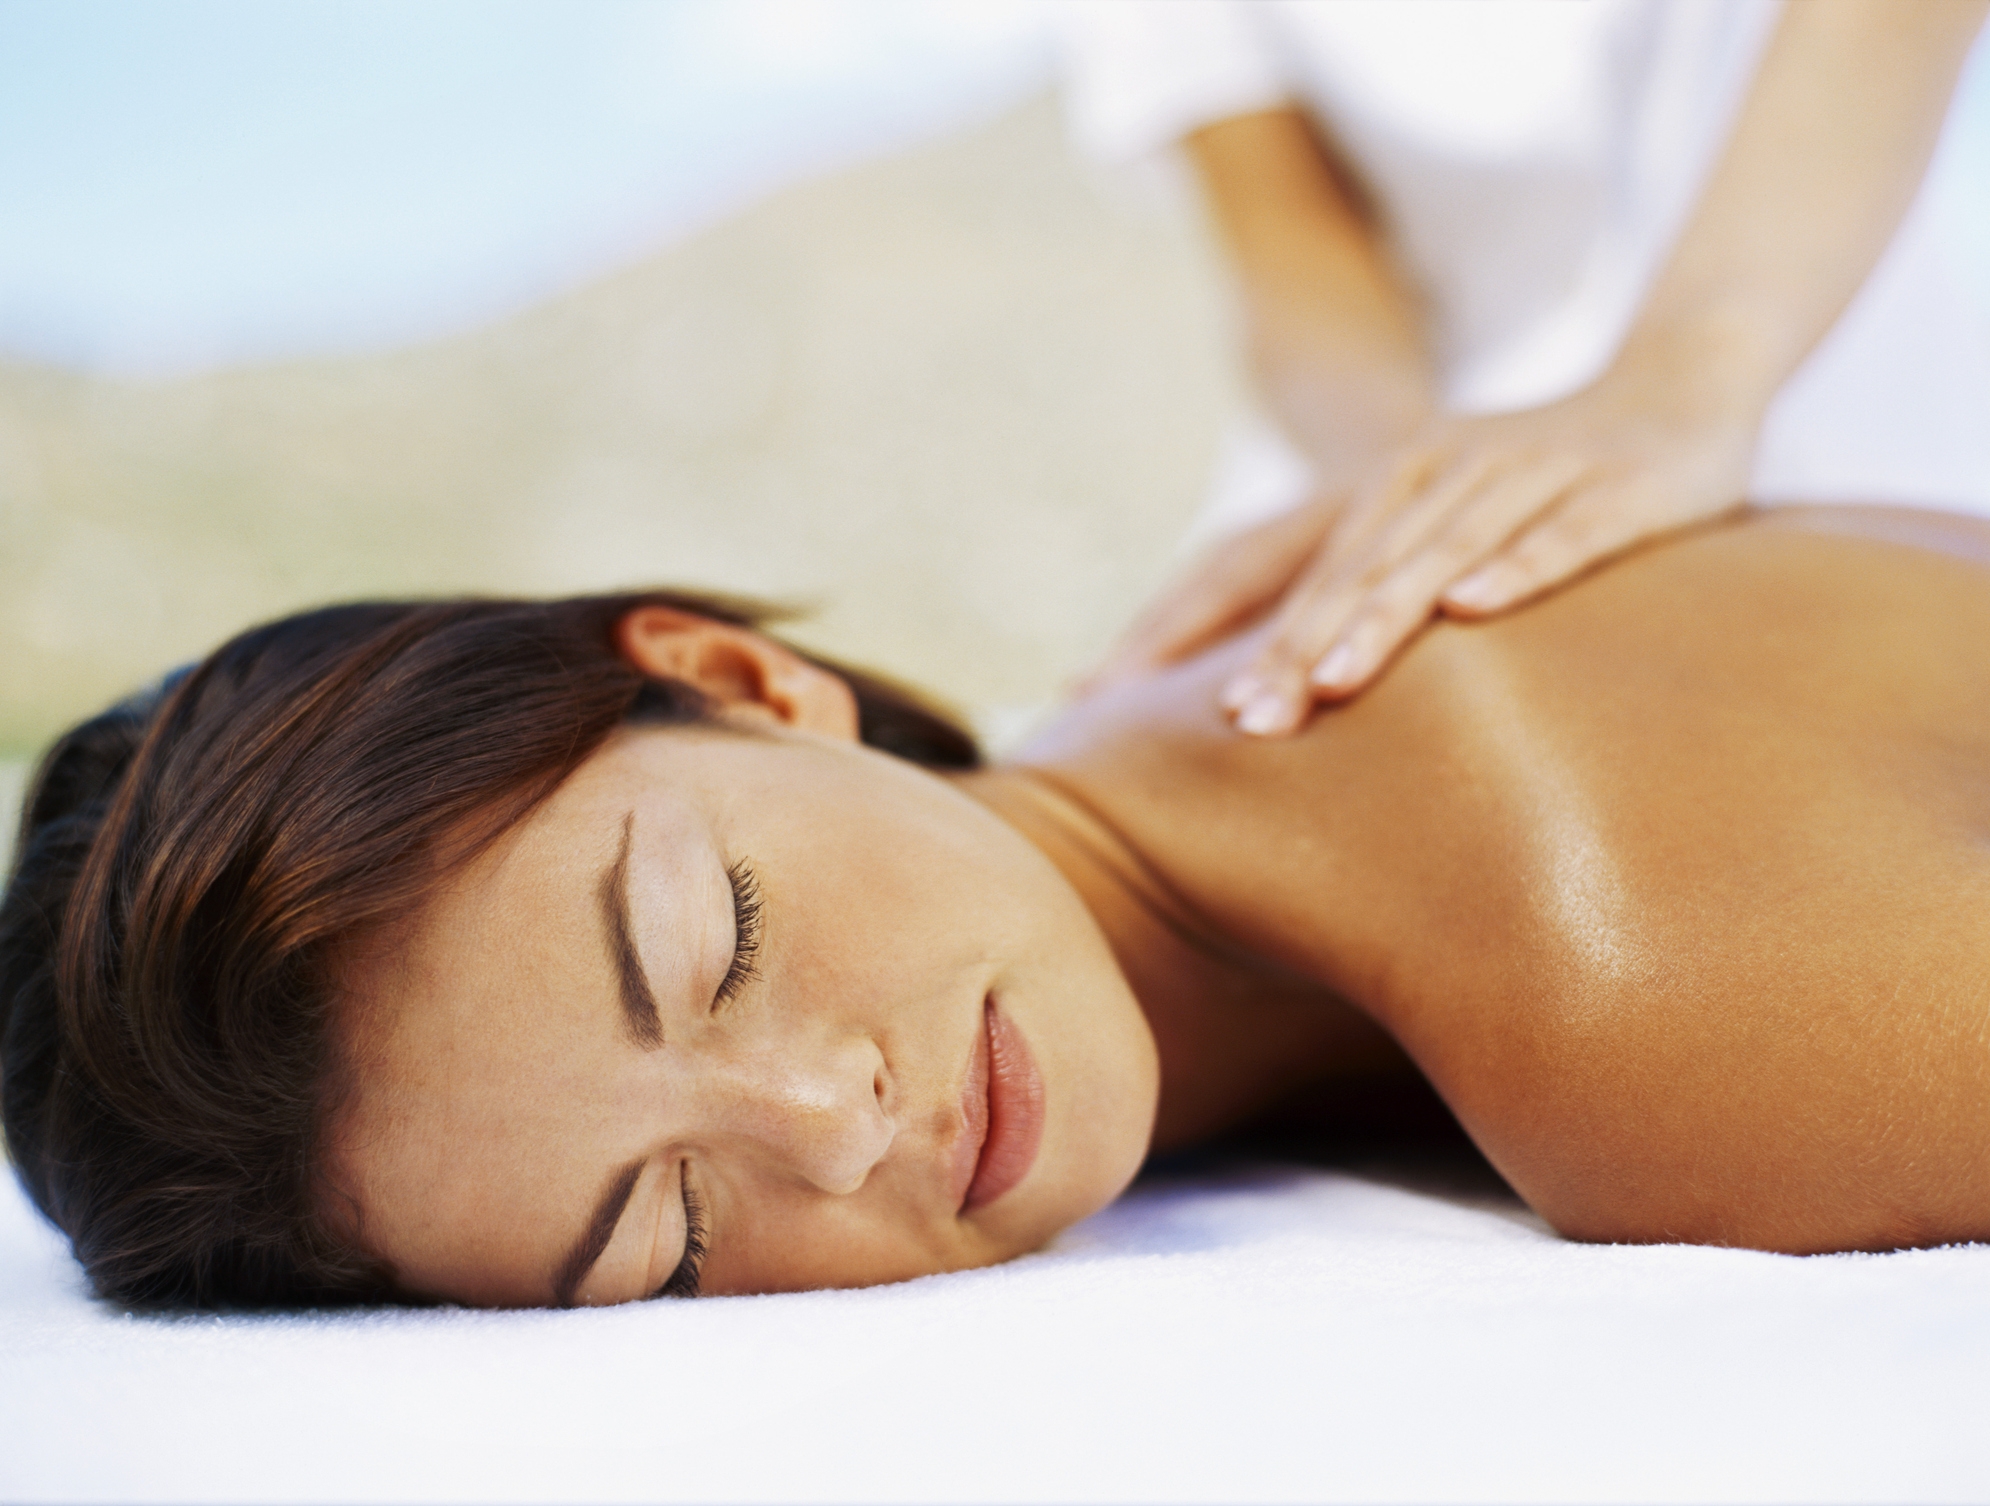 Massage Therapist Jobs in Beacon, New York